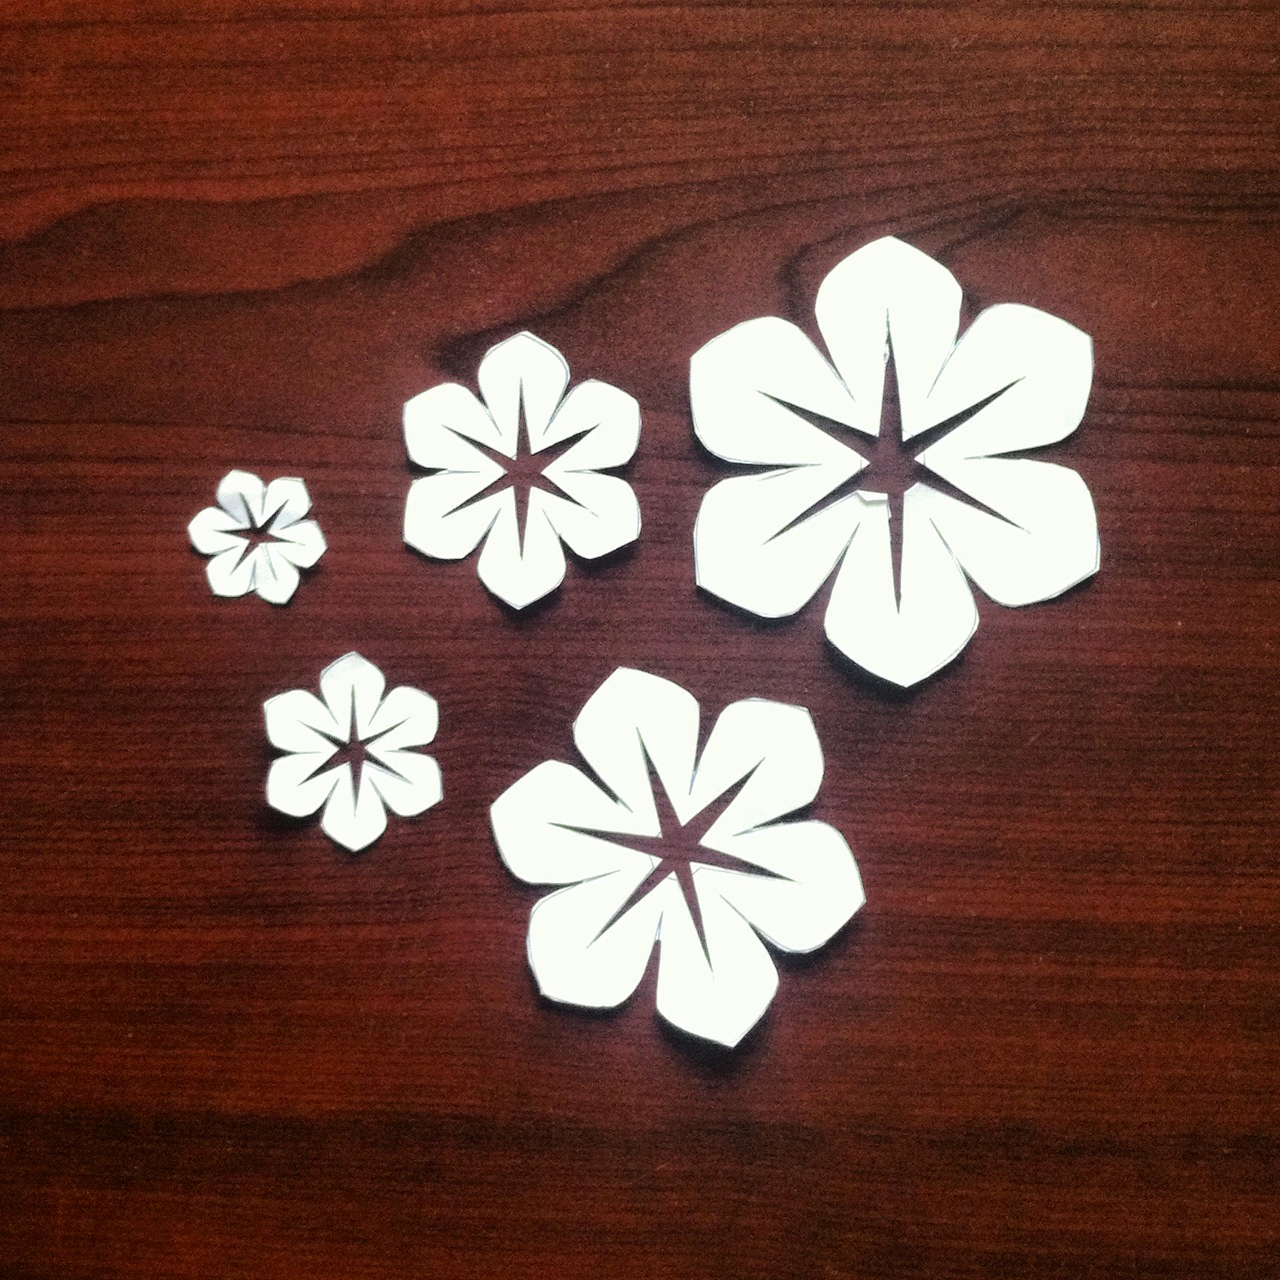 Paper Cut Outs Templates Luxury Fabric Flowers Version 2